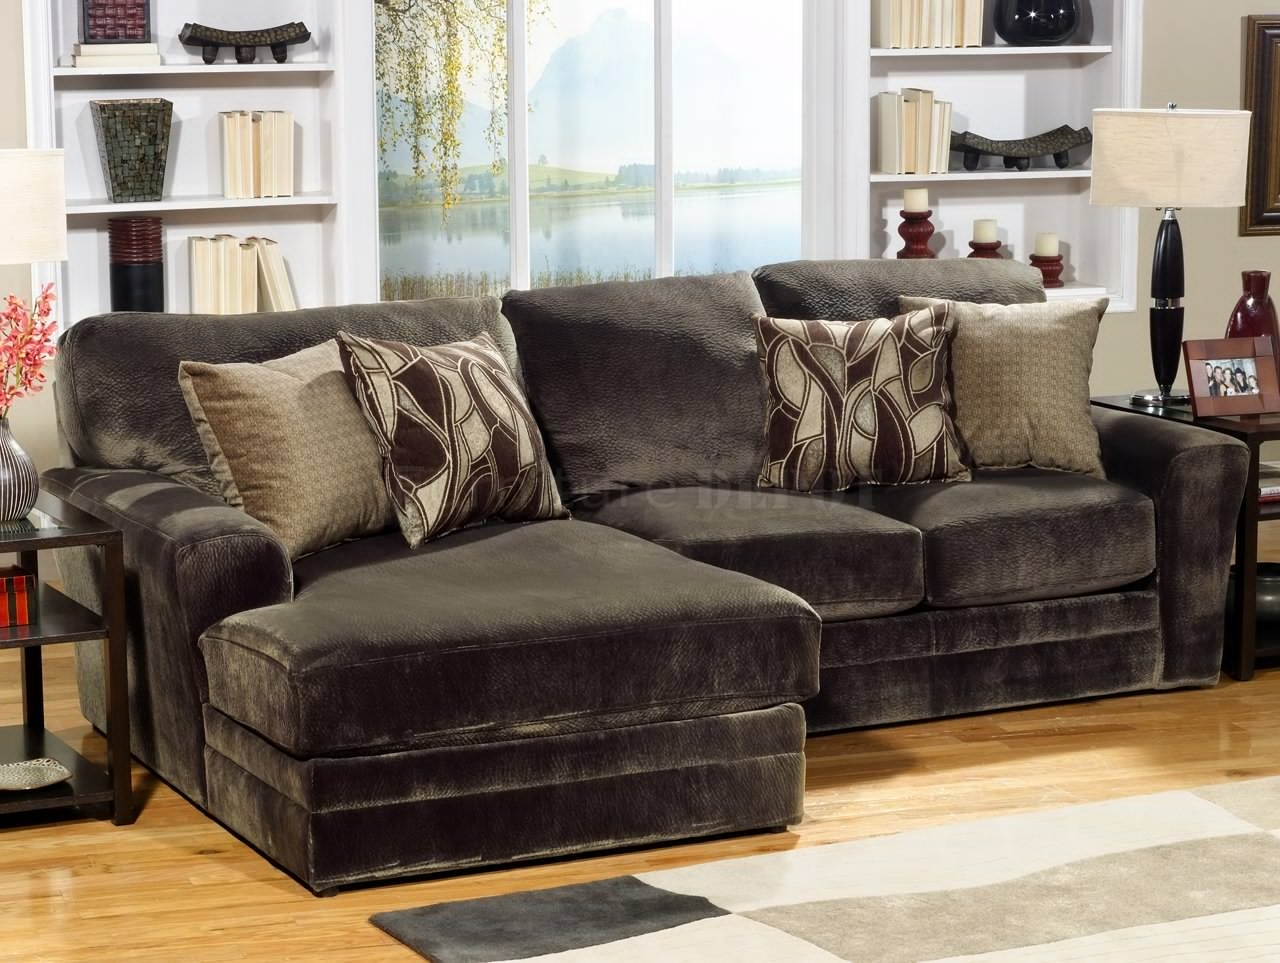 Chenille Sectional Sofas Cleanupflorida Regarding Chenille And Leather Sectional Sofa (#10 of 12)